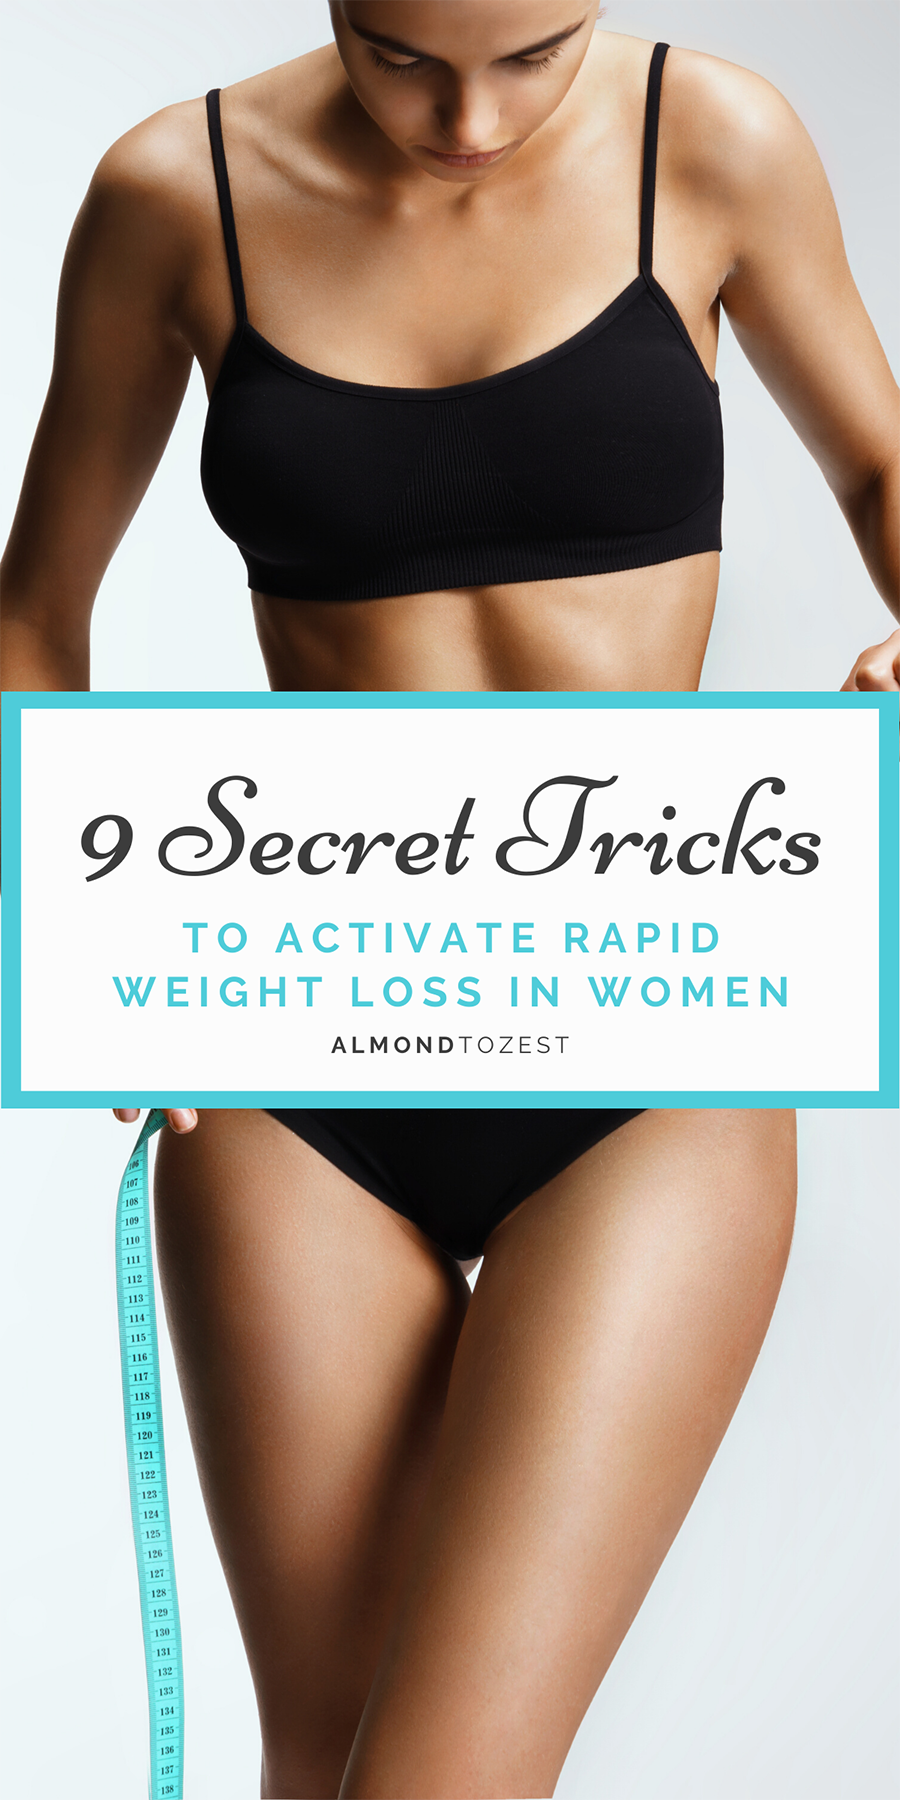 You don't have to cram extra hours in the gym or drastically lower your calorie intake. These 9 simple strategies will help you lose crazy amounts of fat in the long-term and are amazing for weight loss and health. #health #flattummy #simplefatloss